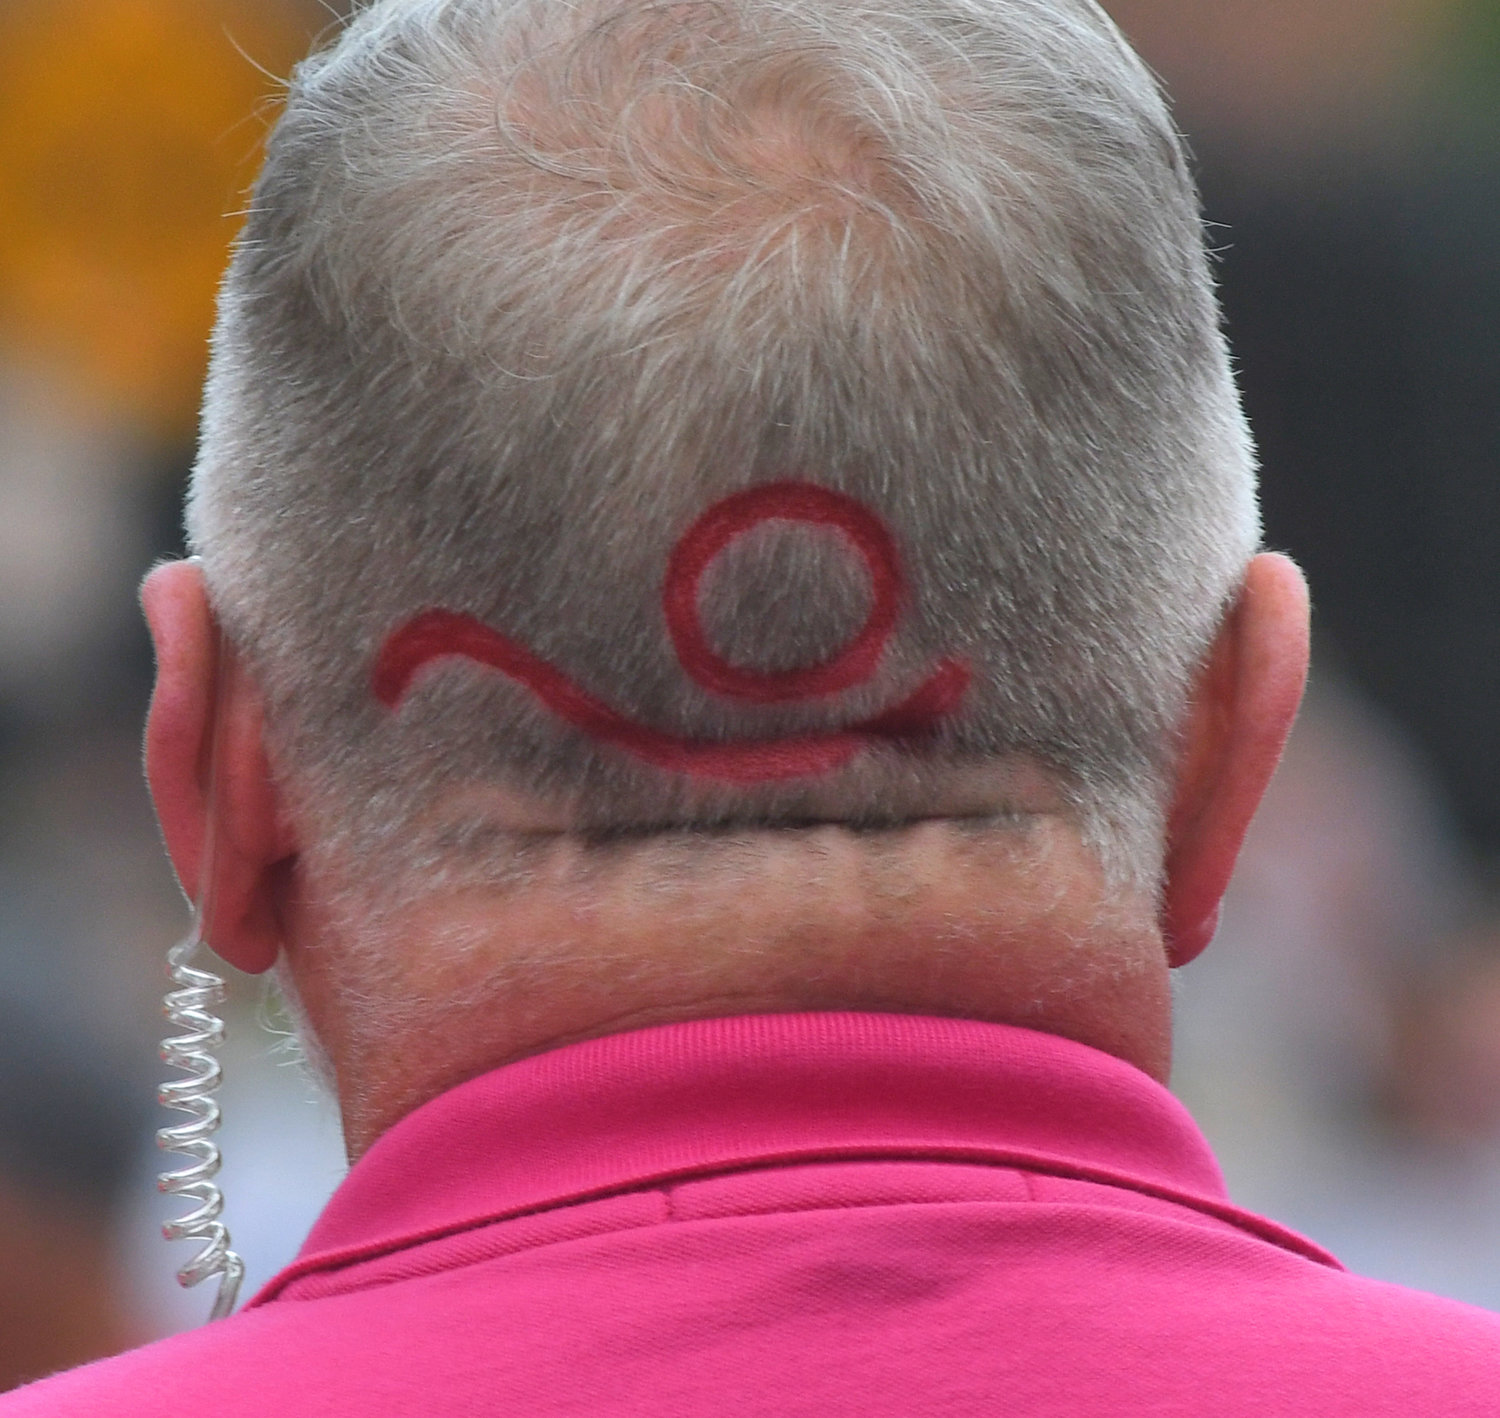 BOILERMAKER PRIDE — The Boilermaker logo is emblazoned in the back of the head of a race official during Sunday's 42nd annual event.